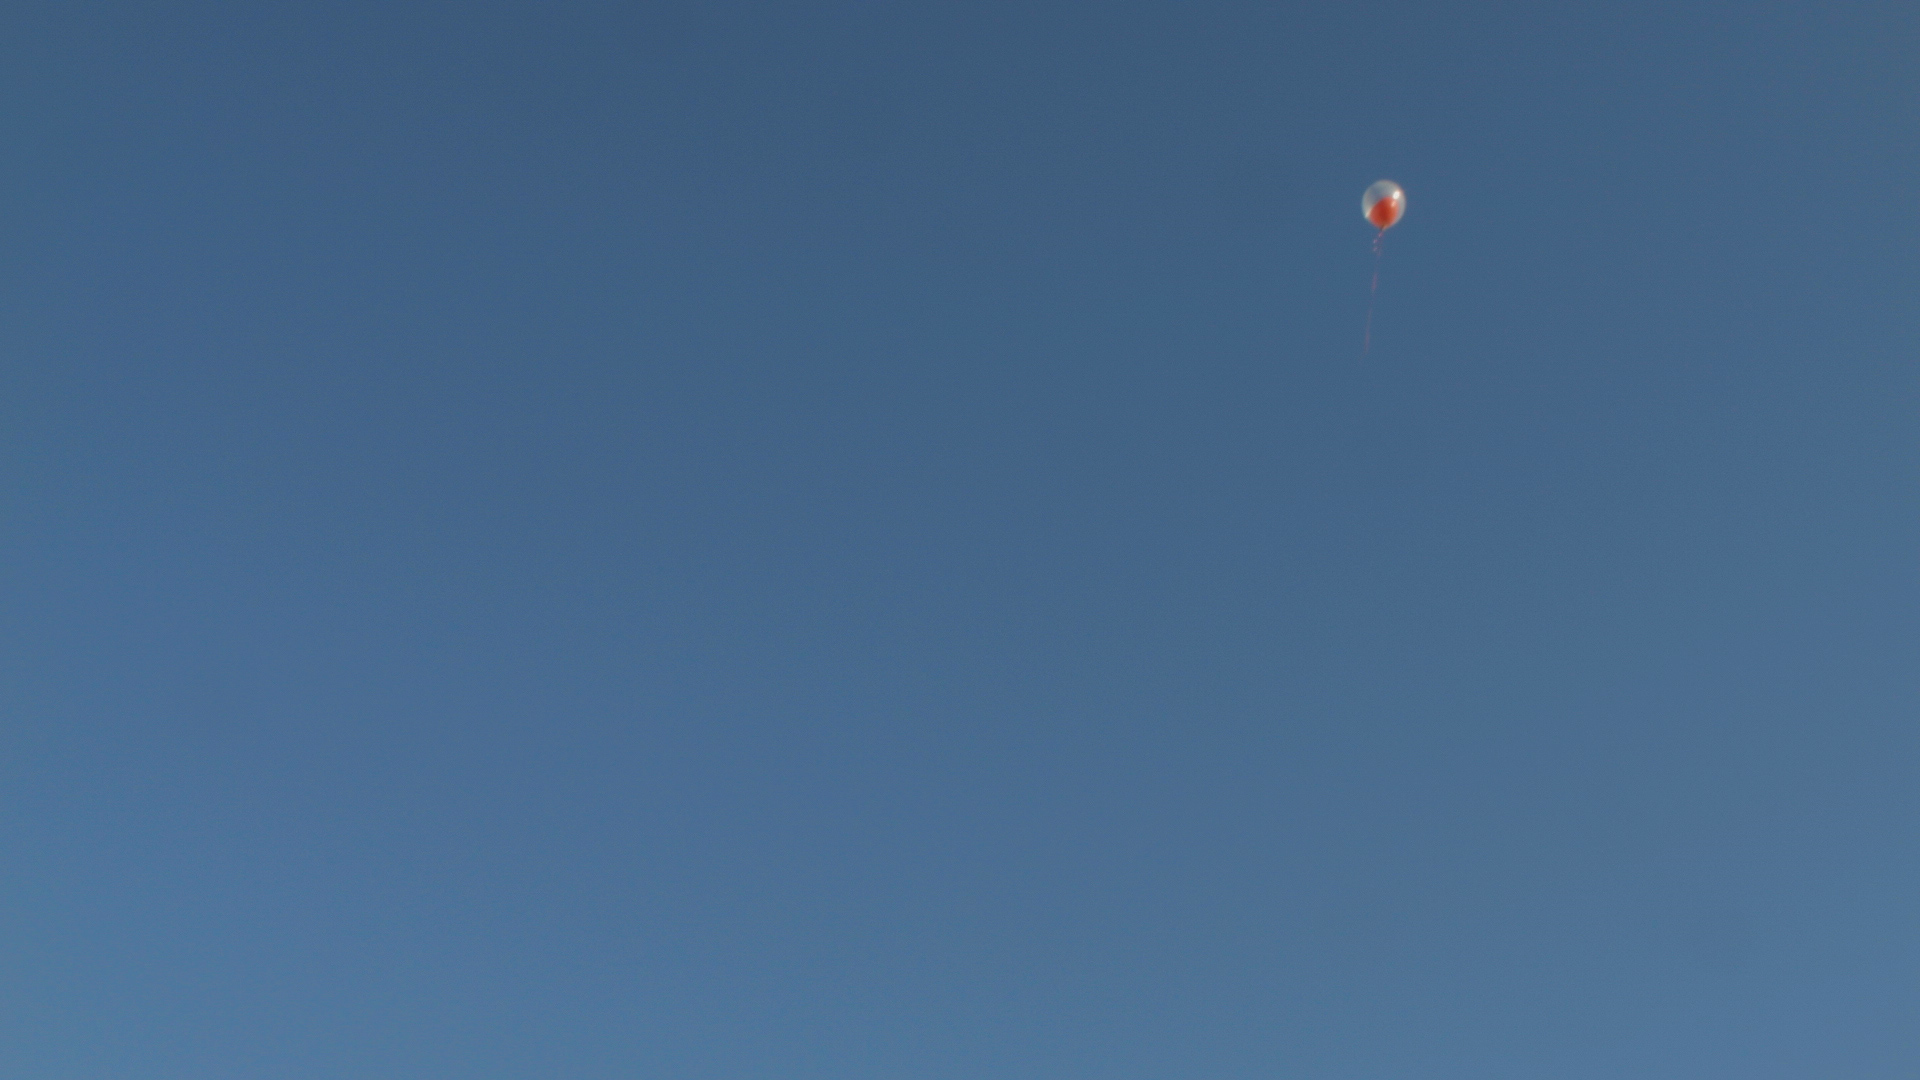 Balloon still 1.jpg